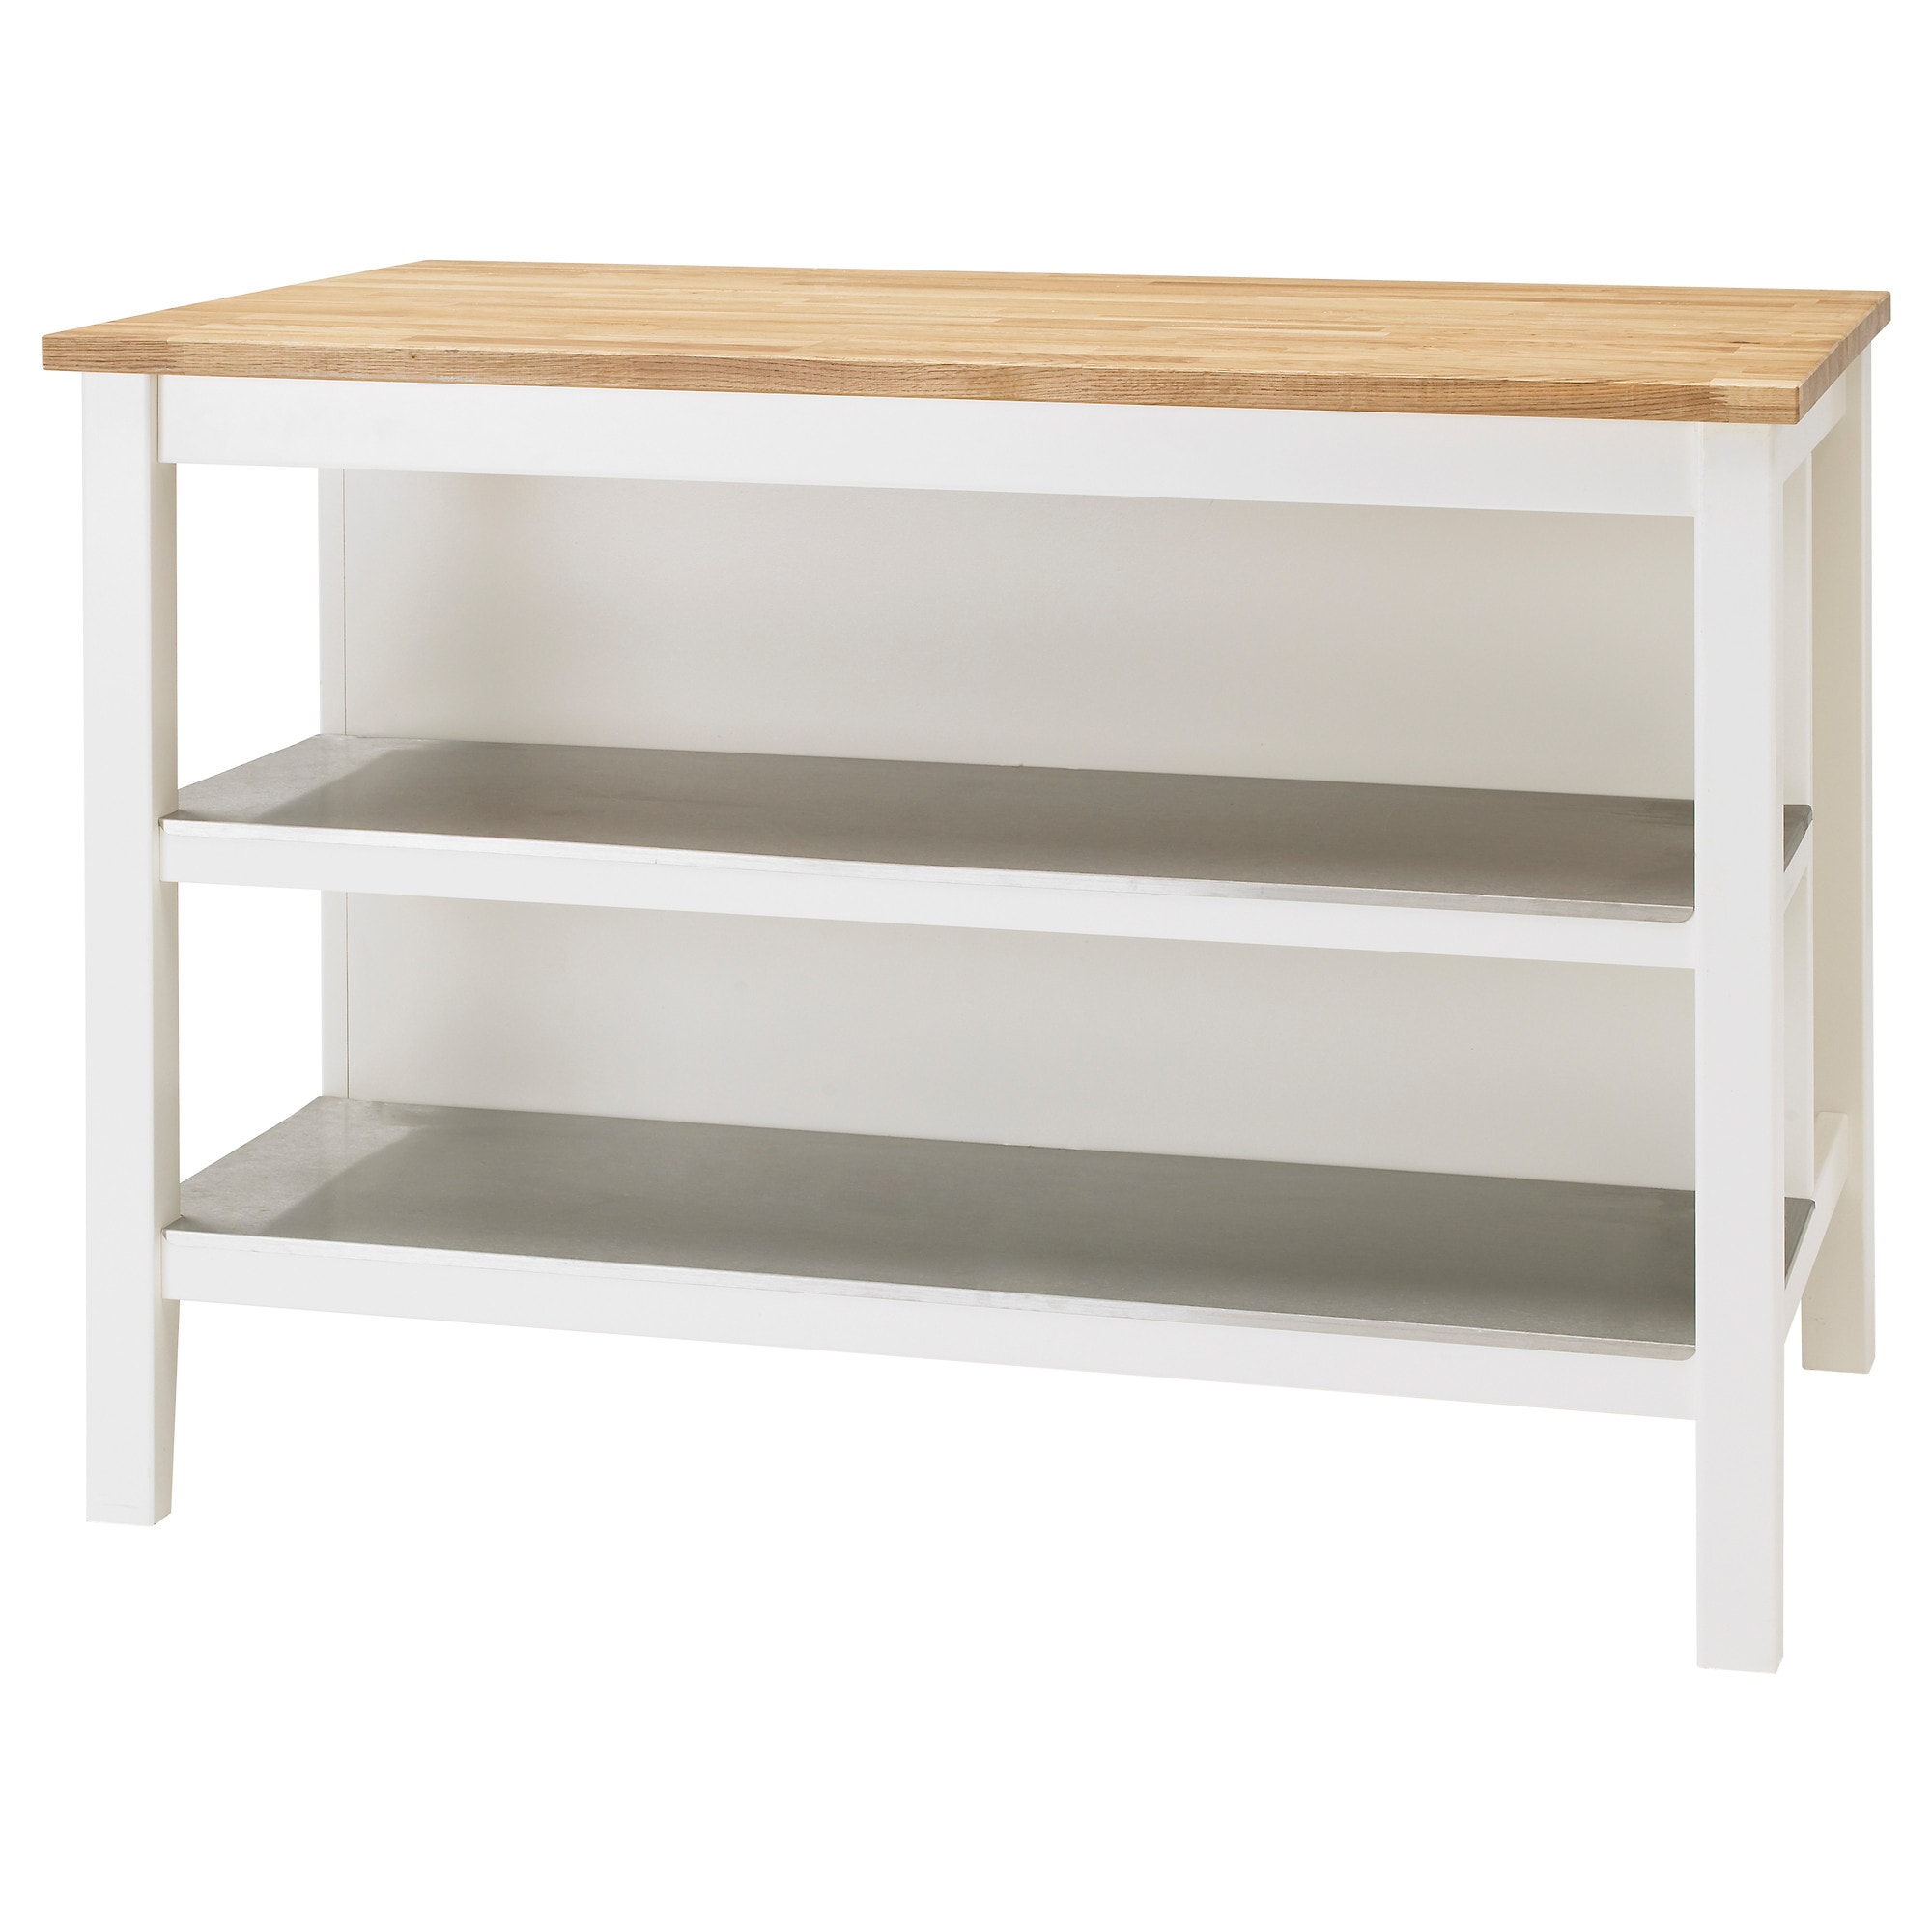 stenstorp kitchen island ikea - Kitchen Side Tables